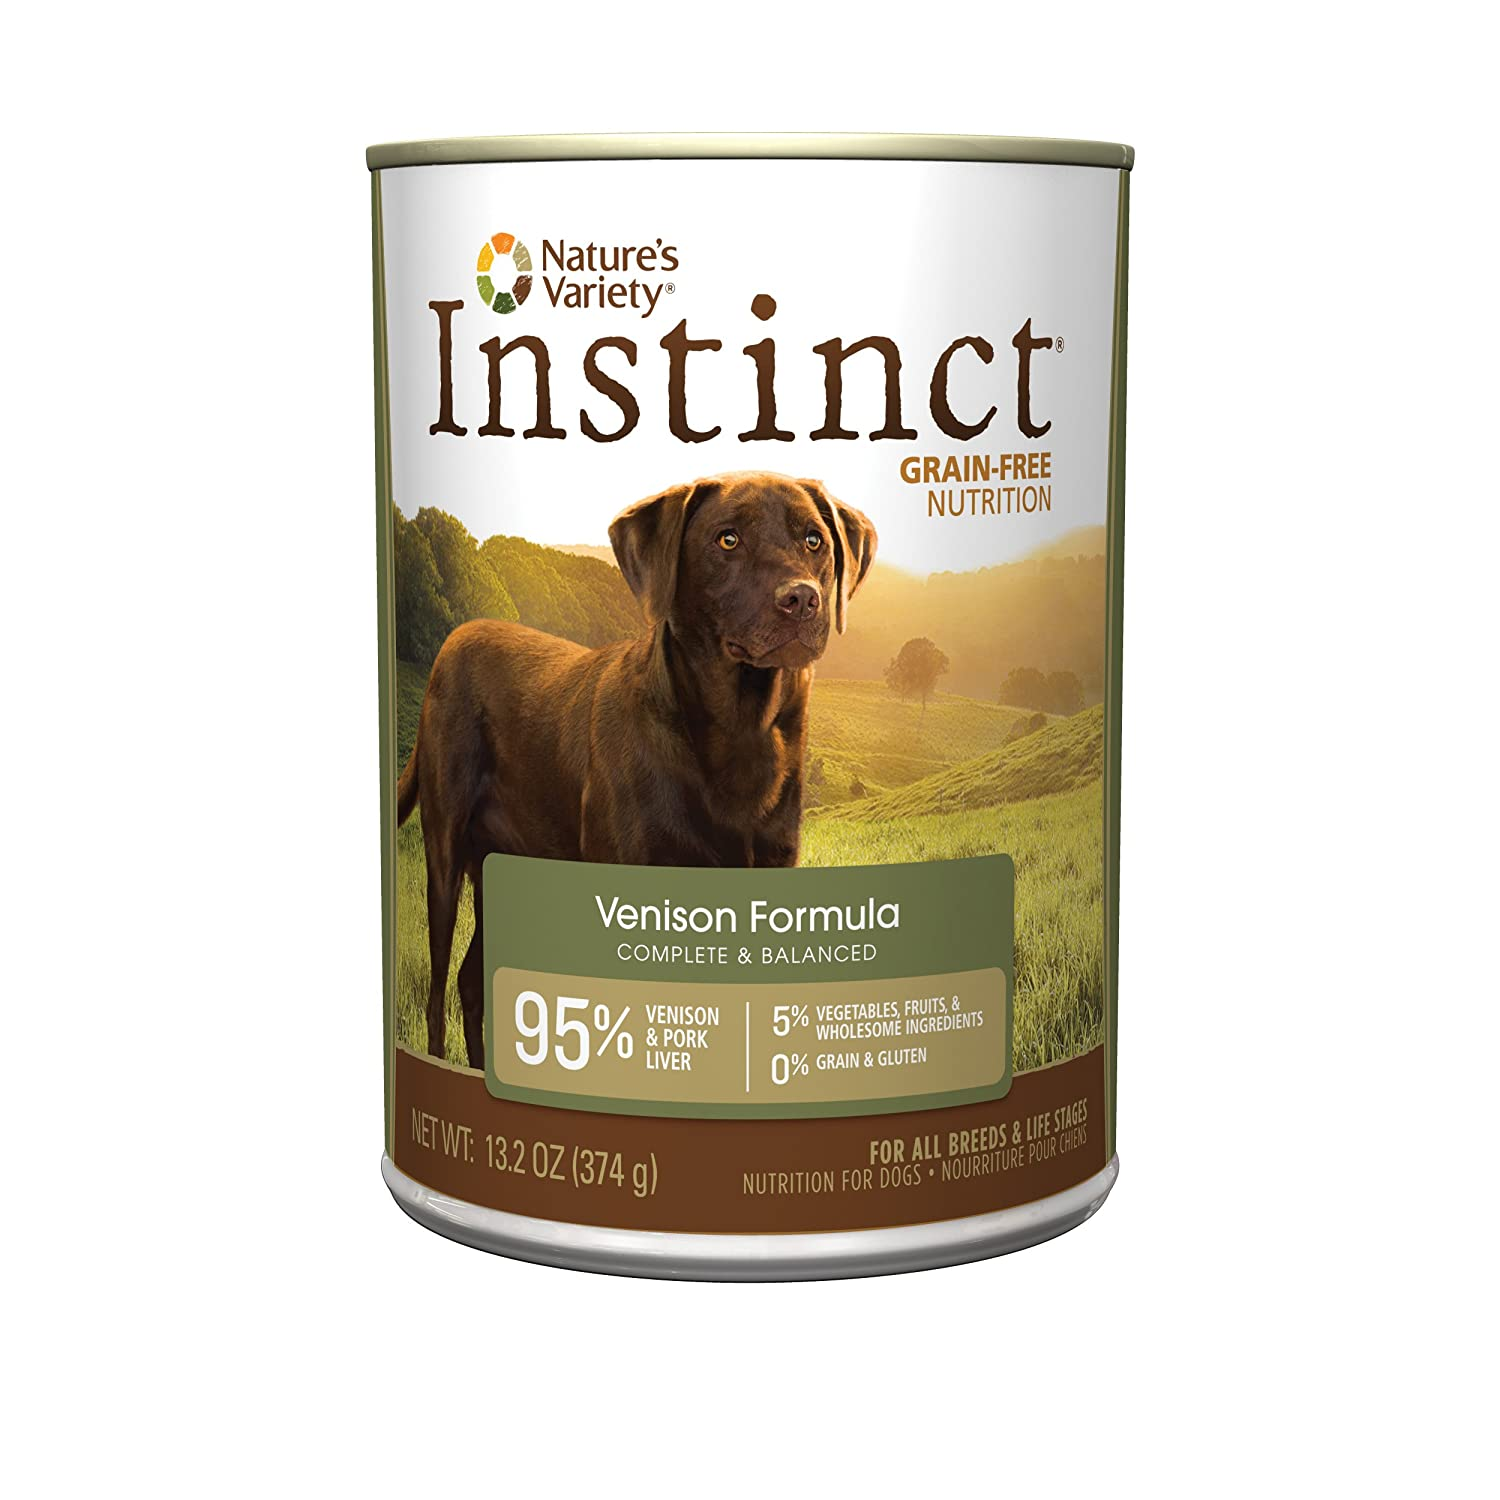 Best Tasting Wet Dog Food For Picky Eaters